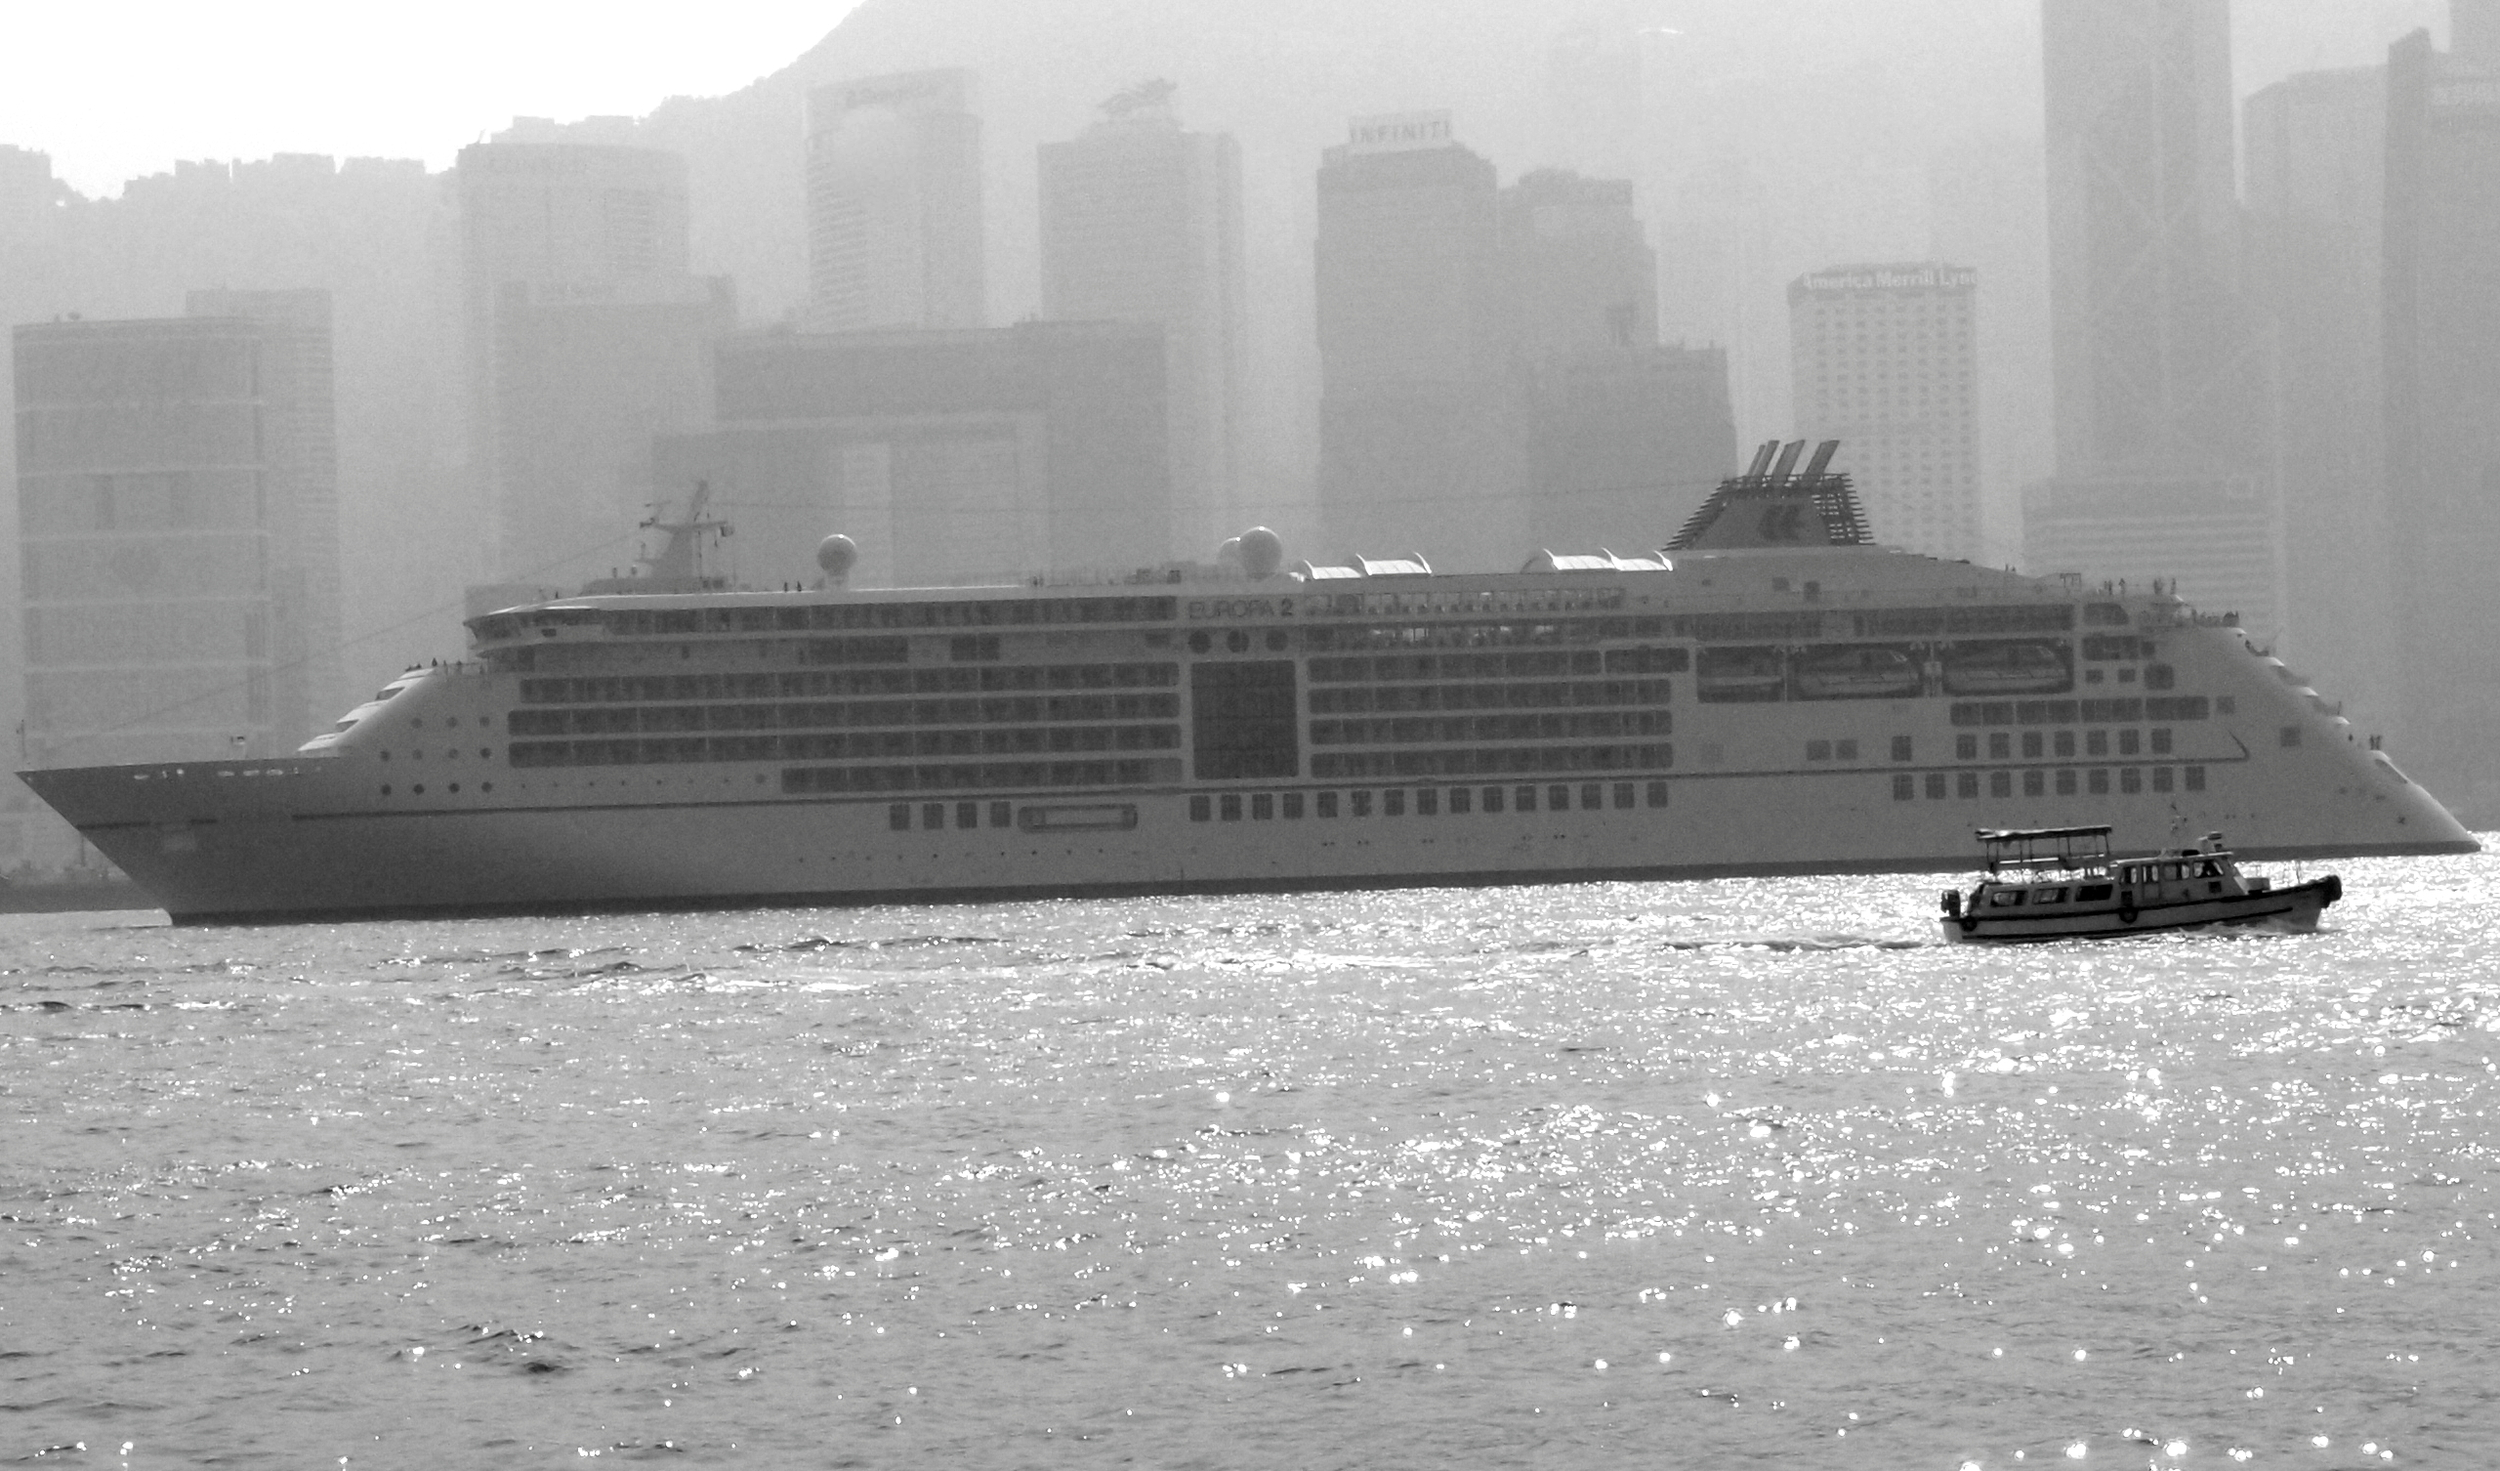 The Europa 2 sailing out of a smoggy Hong Kong harbour on January 5th 2014